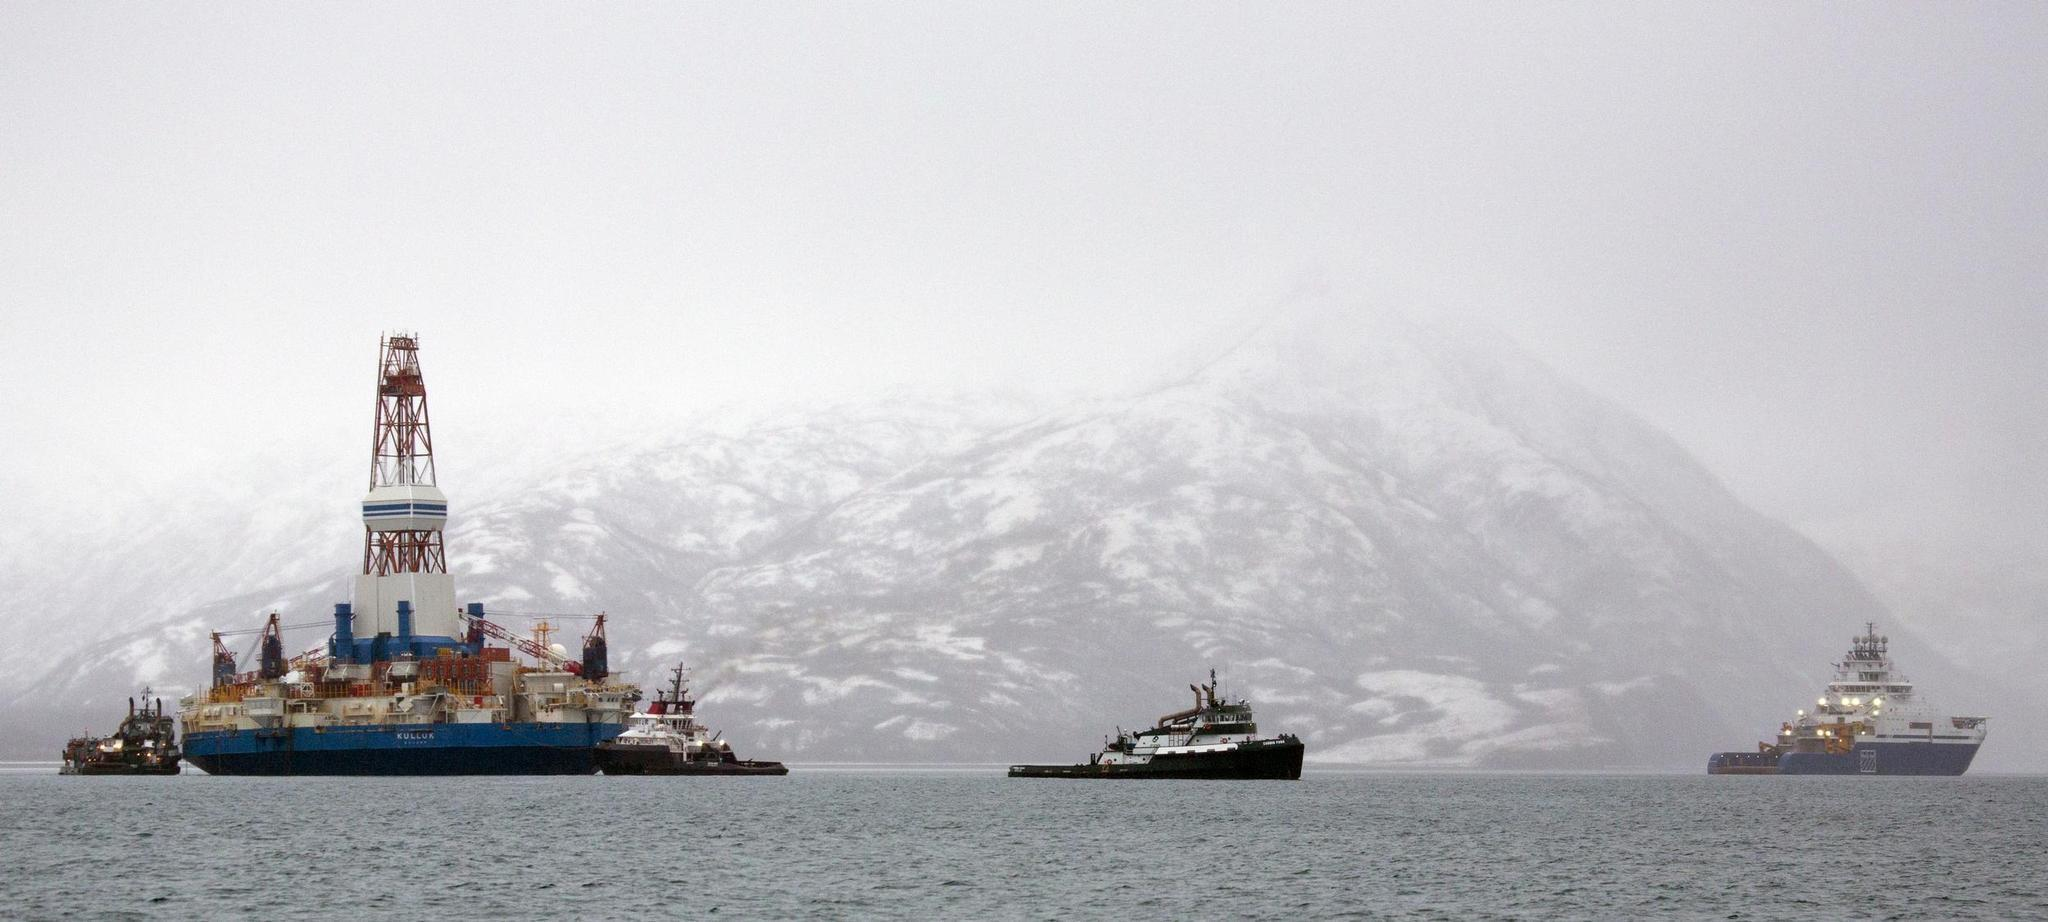 Salvage teams conduct an assessment of Shell's Kulluk drill barge in January 2013 in Kodiak Island's Kiliuda Bay in Alaska. A federal judge in Alaska told regulators April 24, 2014, to redo an environmental impact study that underestimated the amount of recoverable oil and, potentially, the risks of offshore drilling to delicate Arctic habitat.